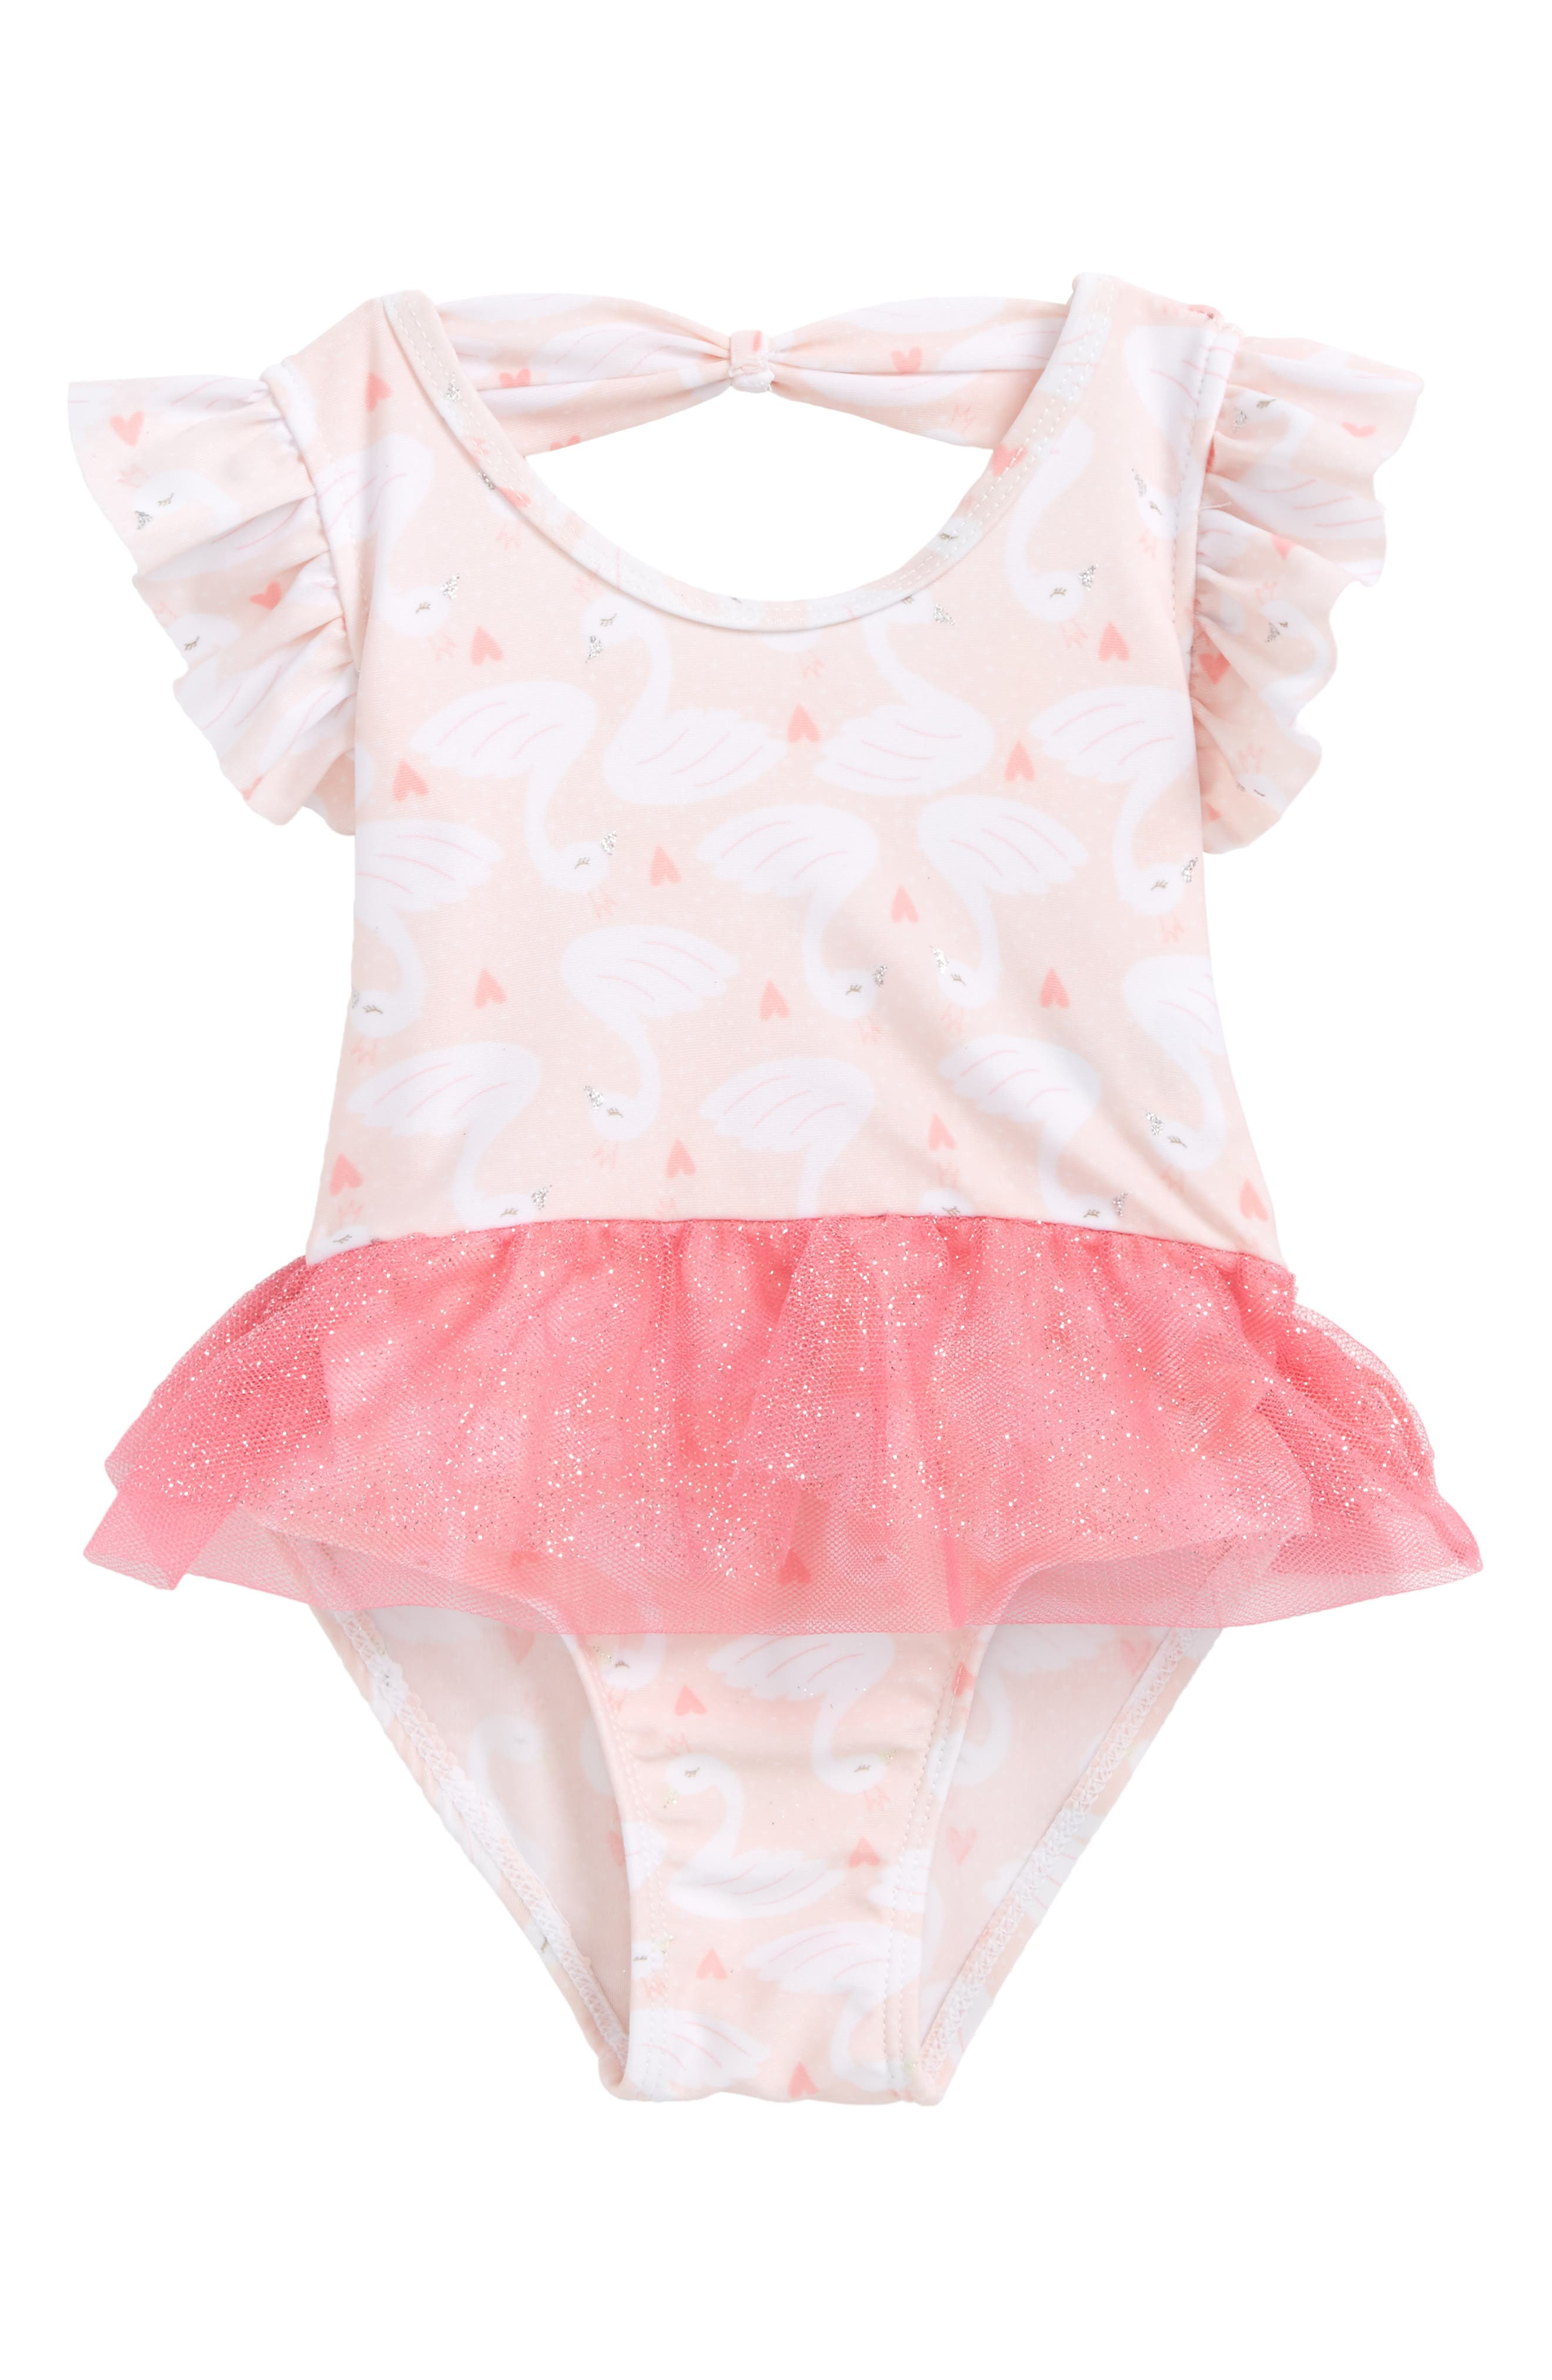 Princess Swan One-Piece Swimsuit,                         Main,                         color, Pink